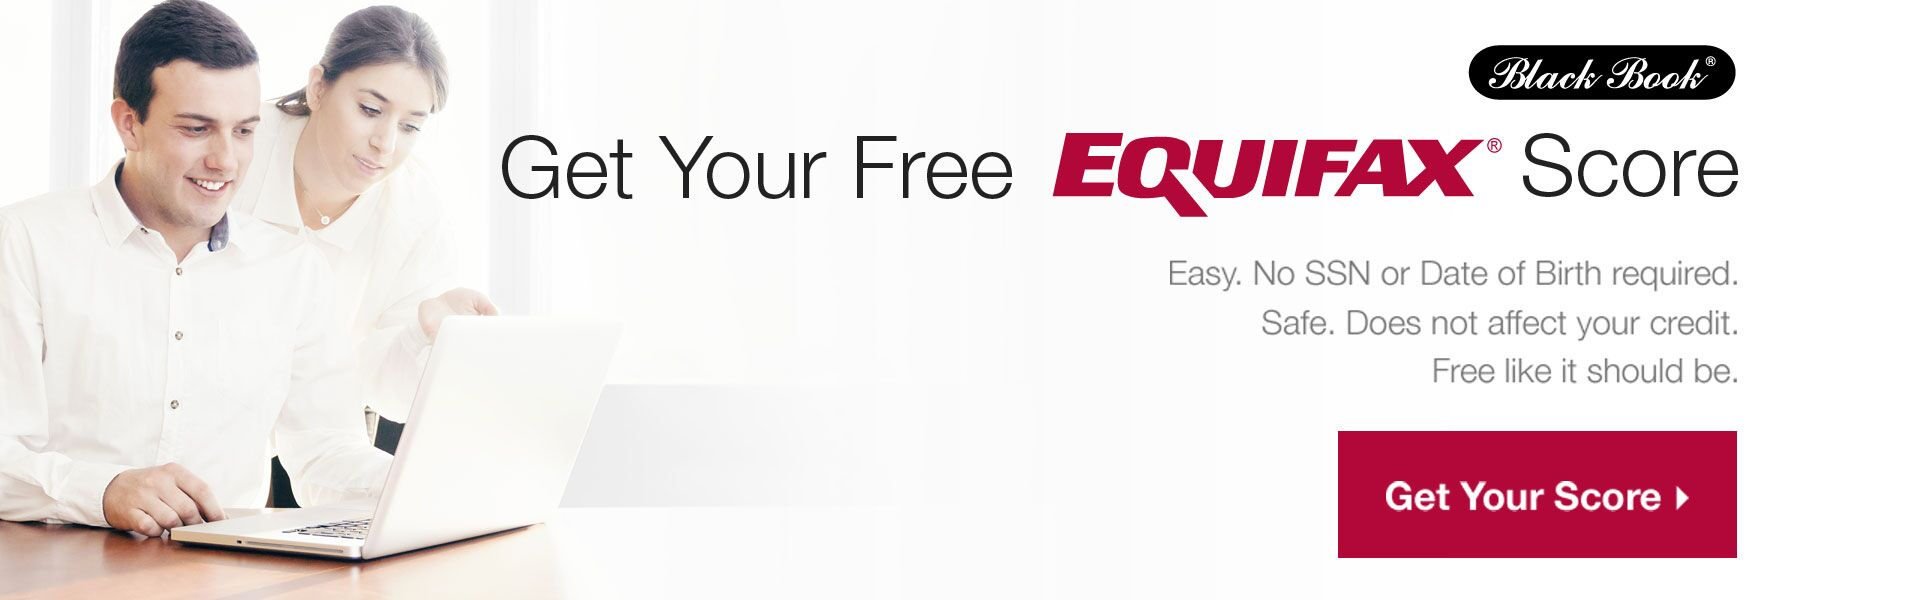 Free Equifax Score